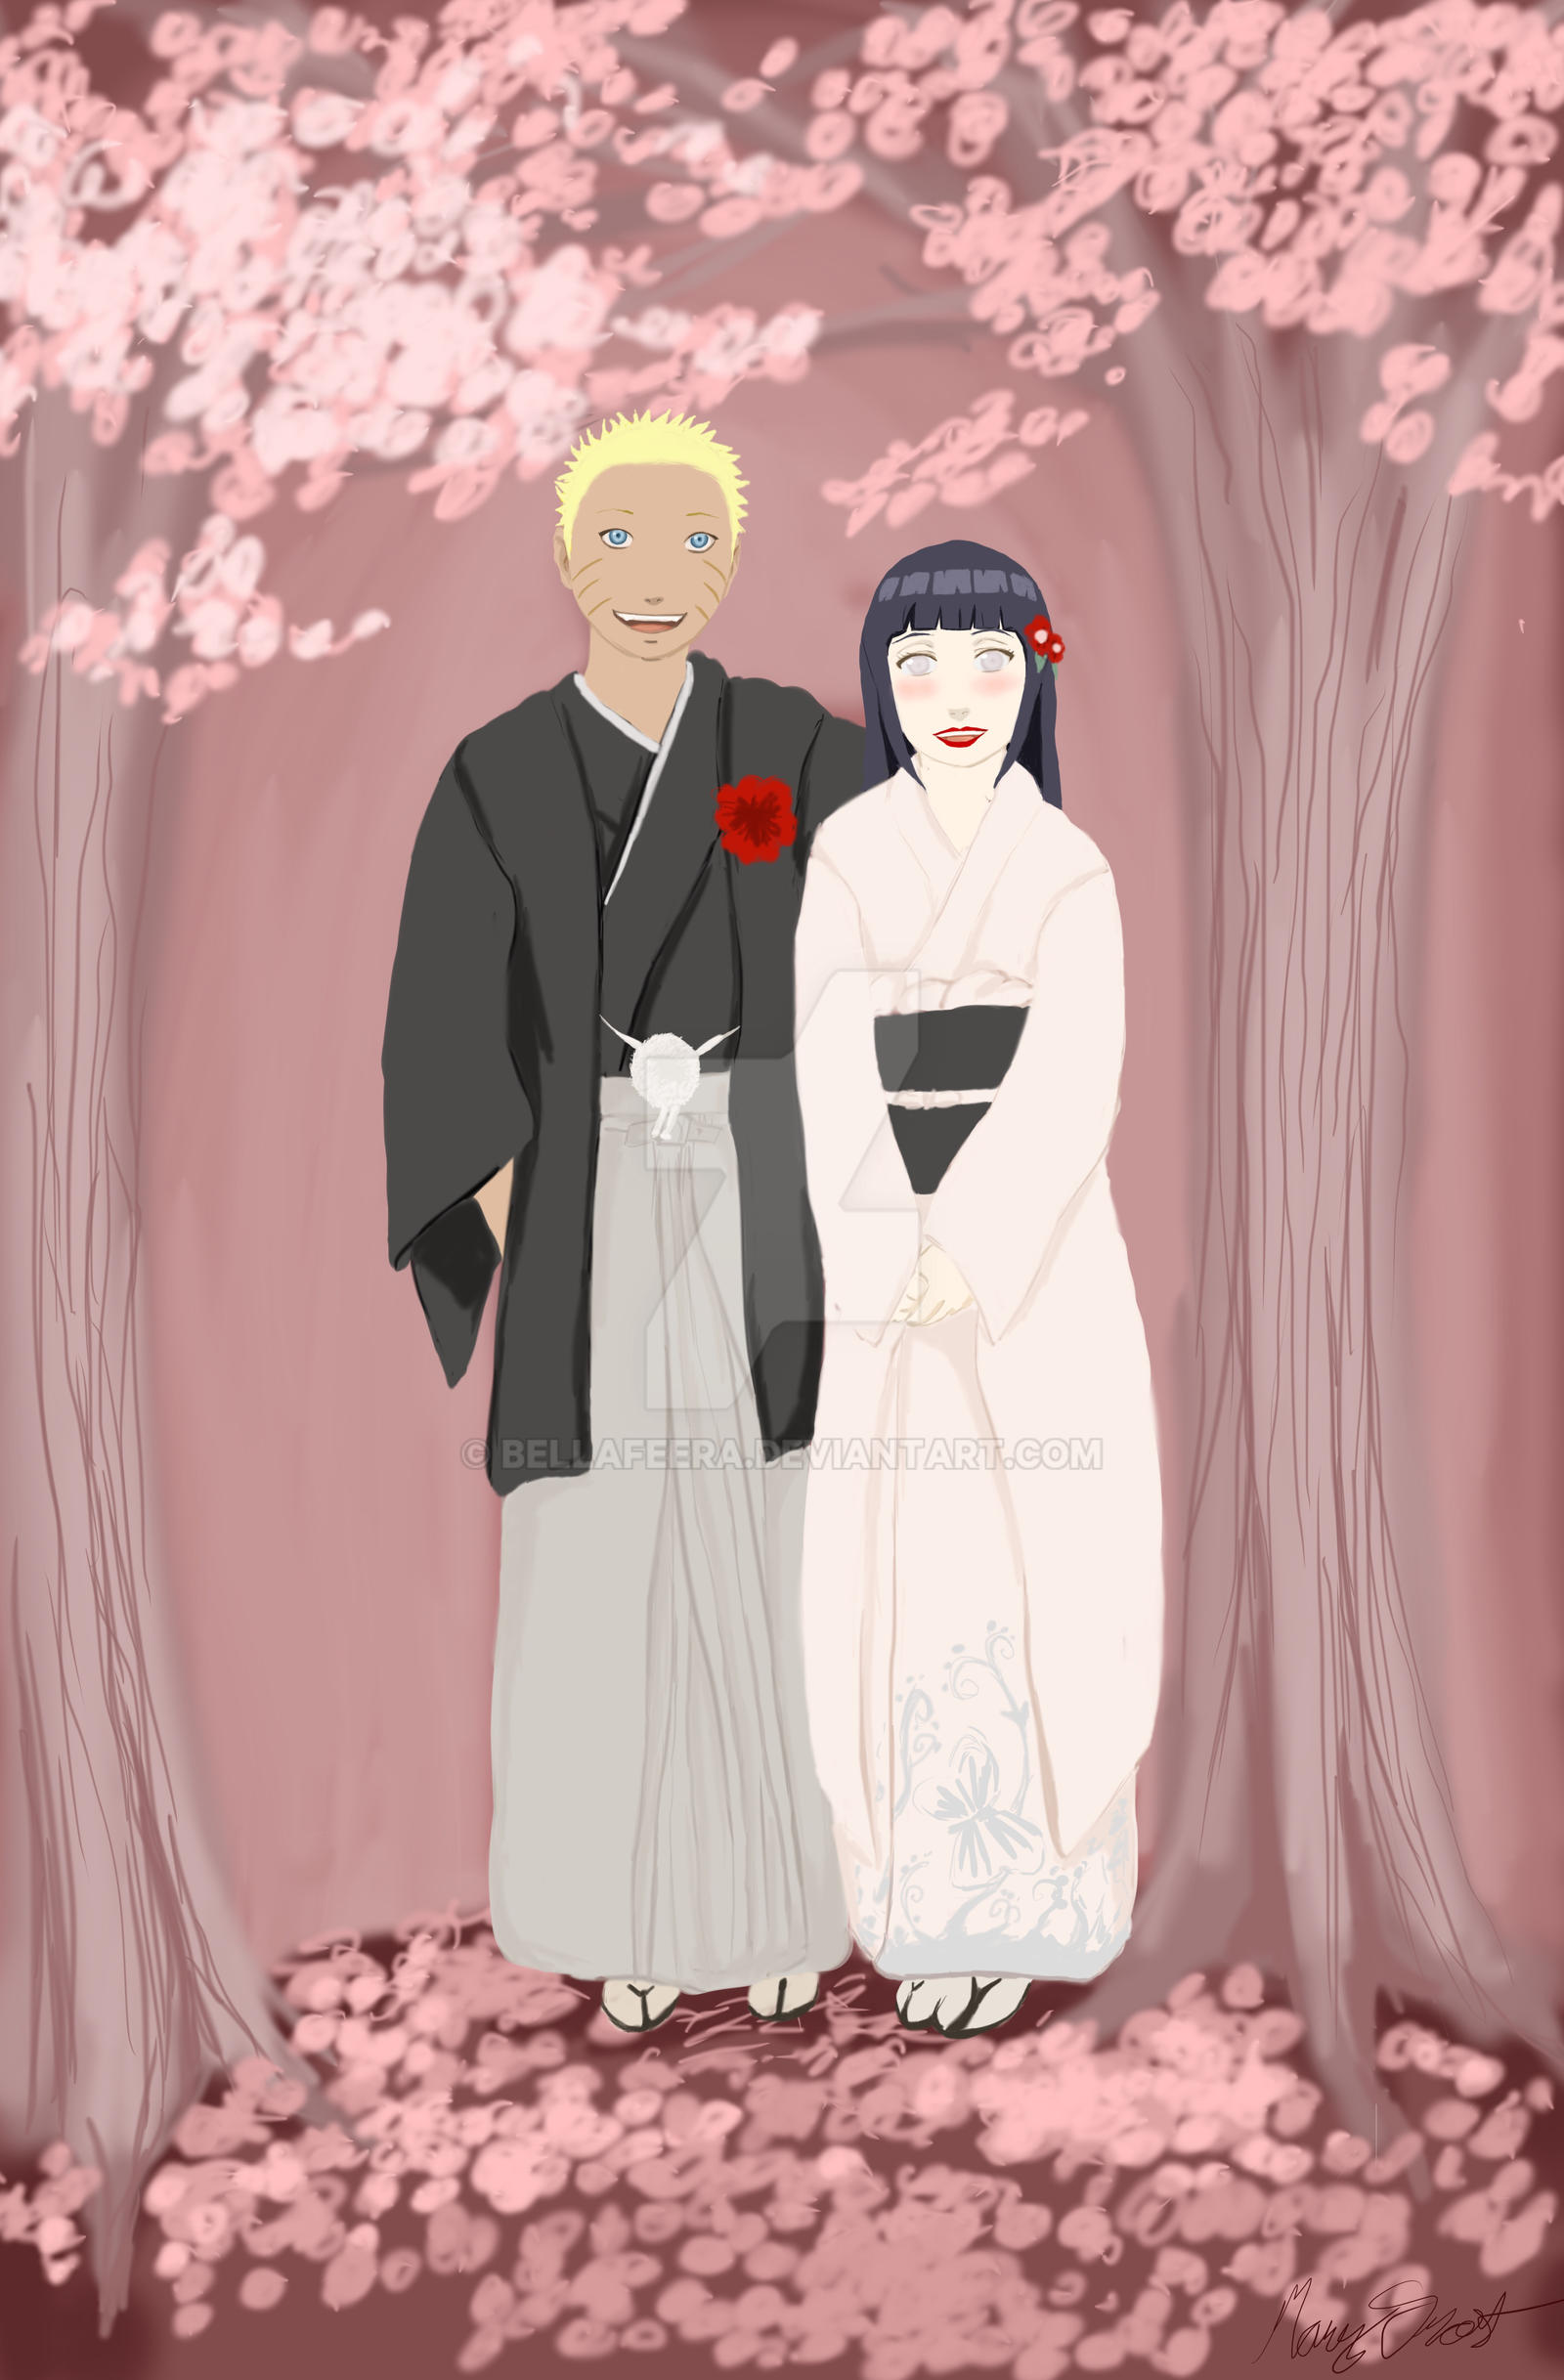 Naruto Hinata Wedding.Naruto And Hinata Wedding Anime Top Wallpaper